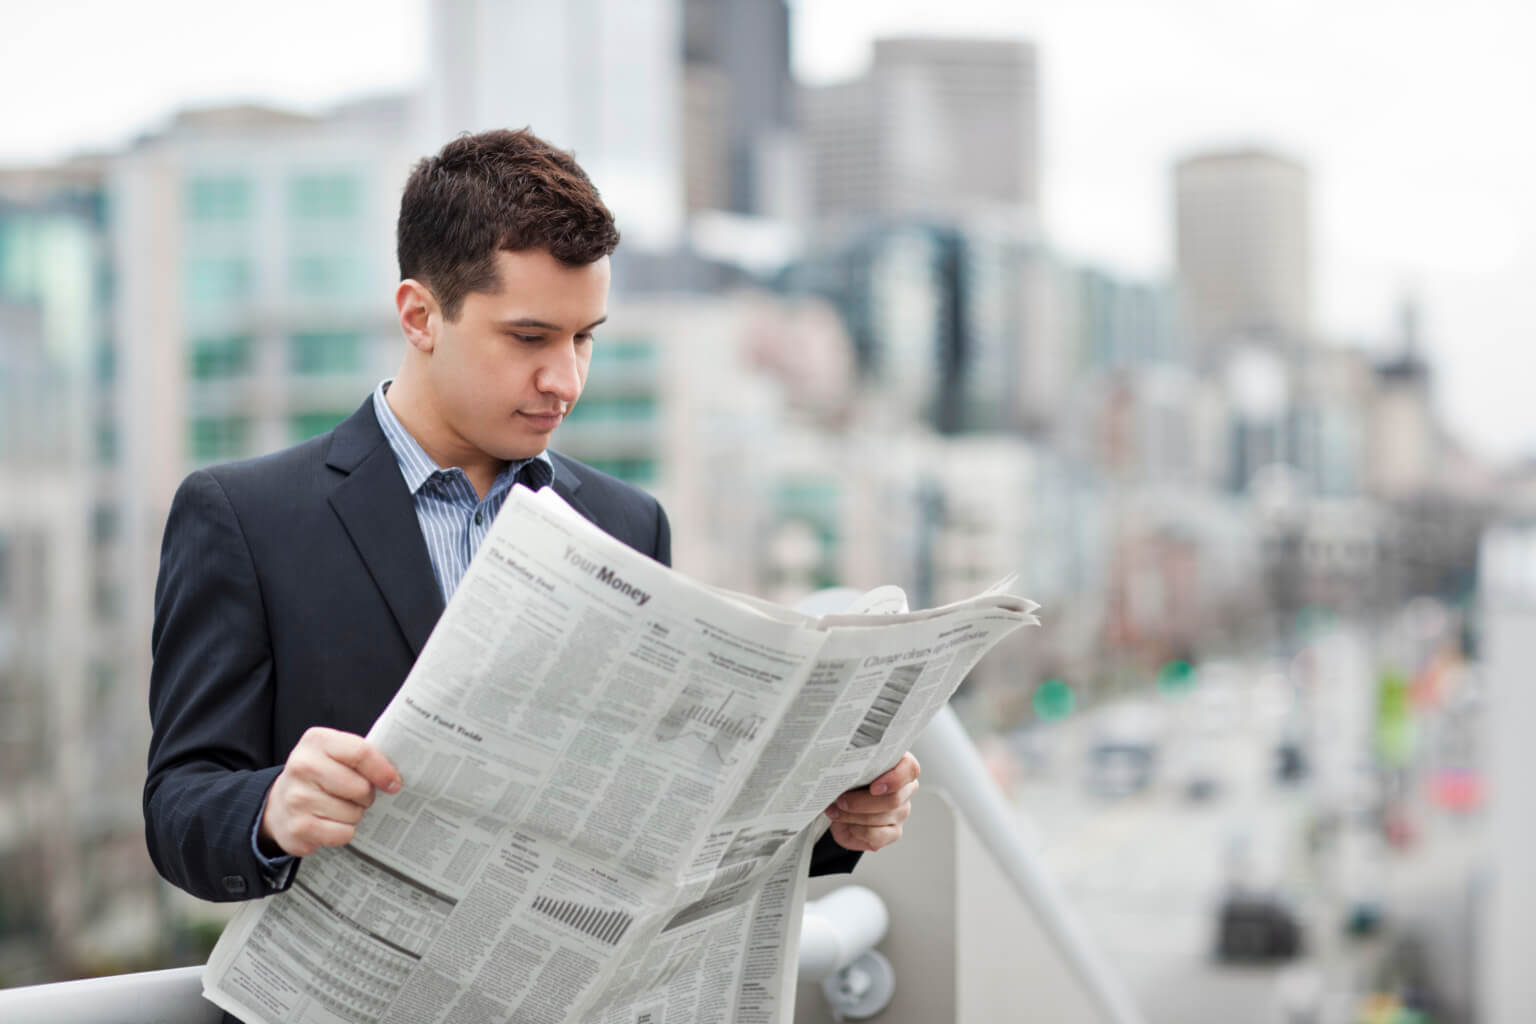 Stay updated with a daily newspaper